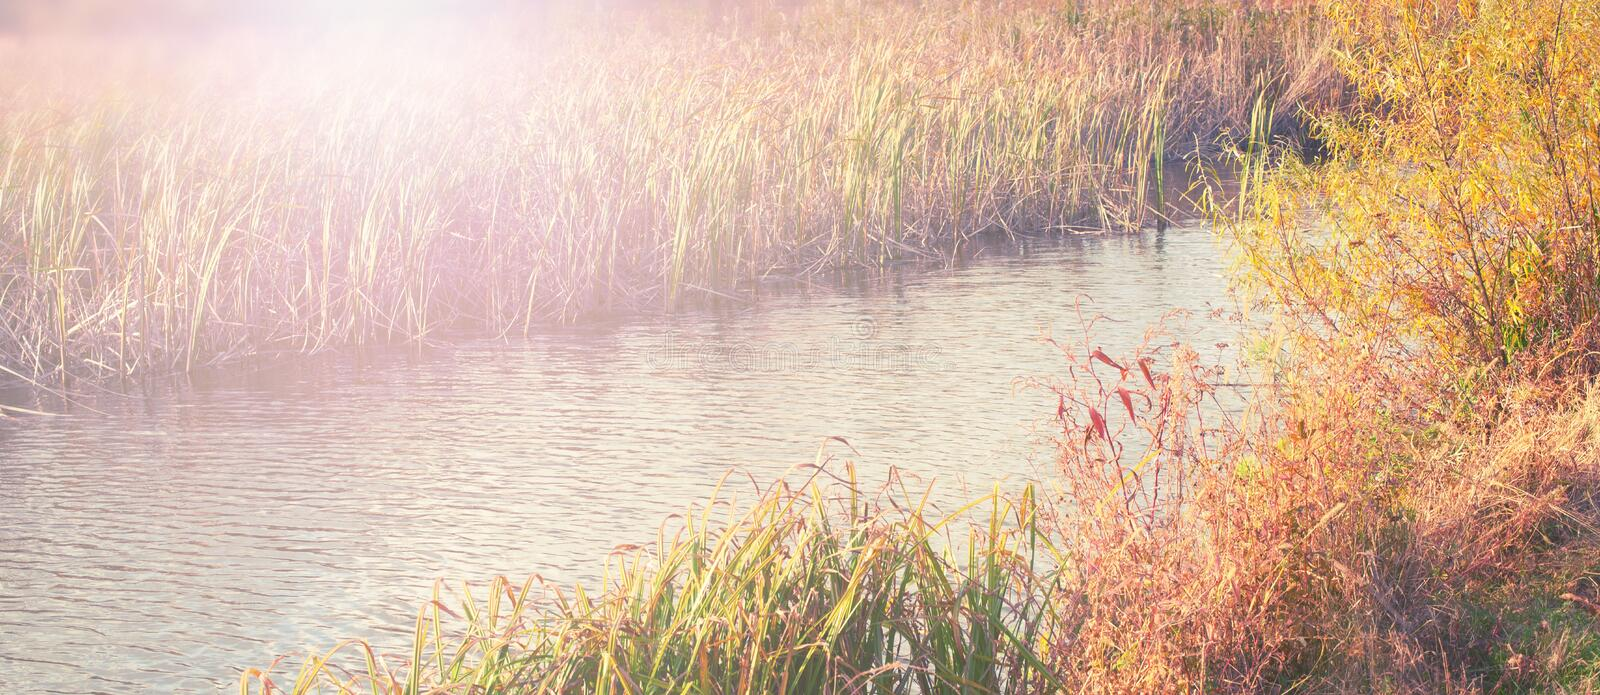 Banner natural autumn landscape river Bank dry grass reeds water nature Selective focus blurred background royalty free stock image